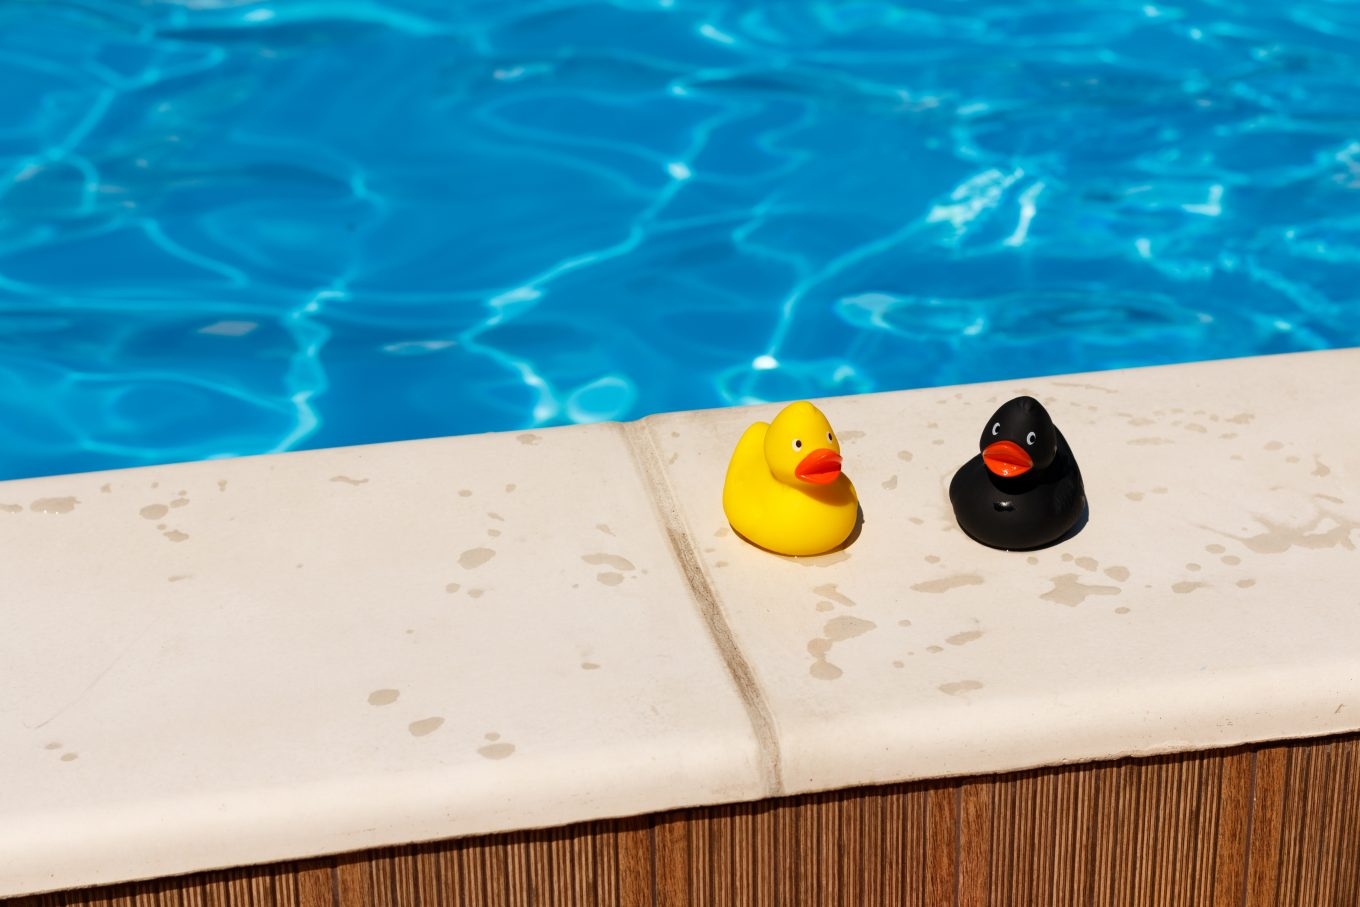 yellow and black duck on white concrete surface